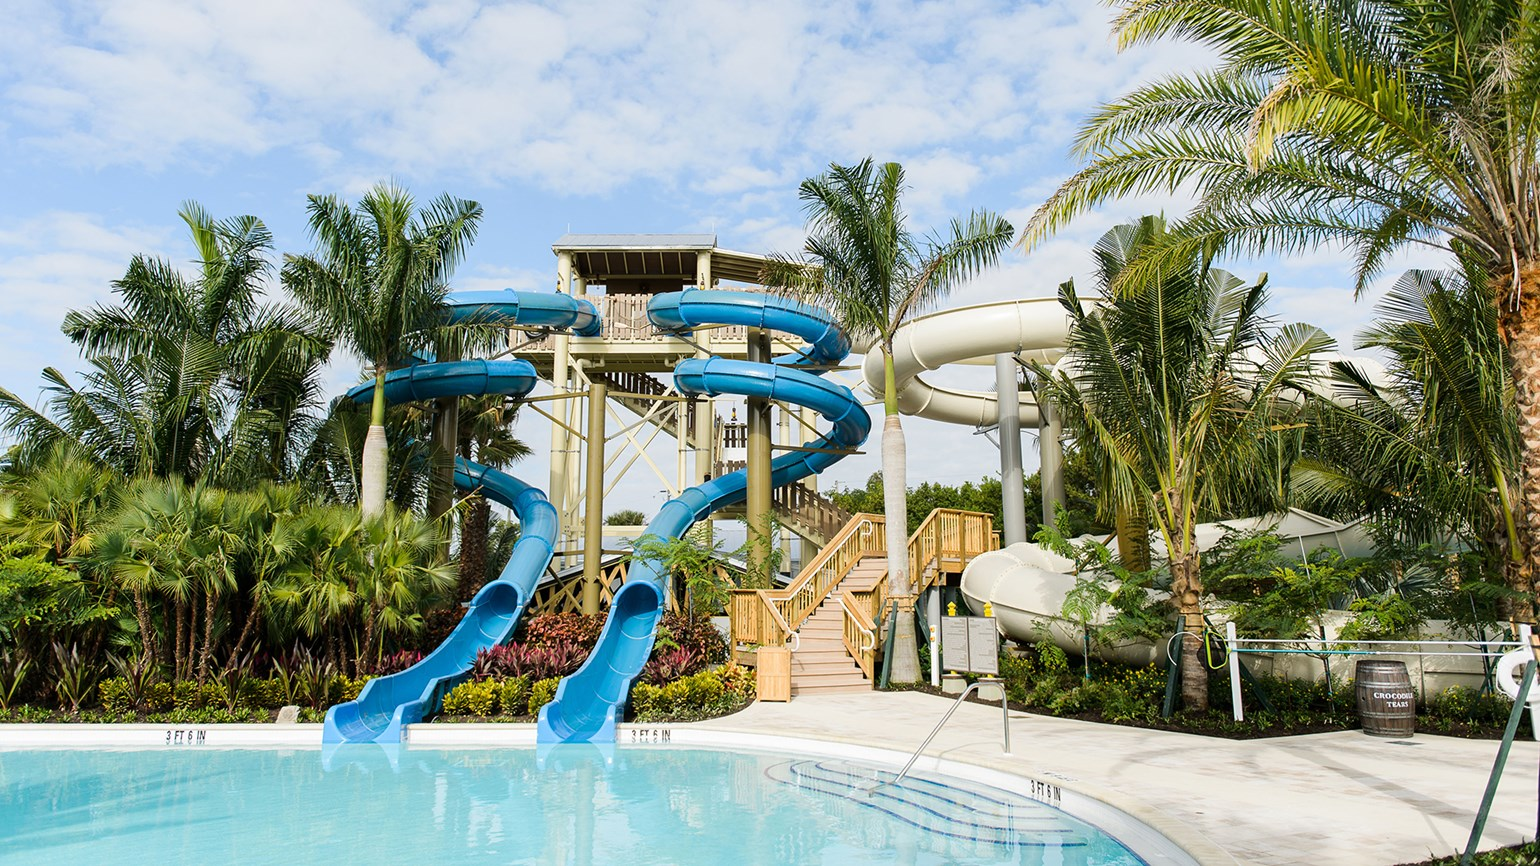 Waterpark opens at Hyatt Regency on Gulf coast